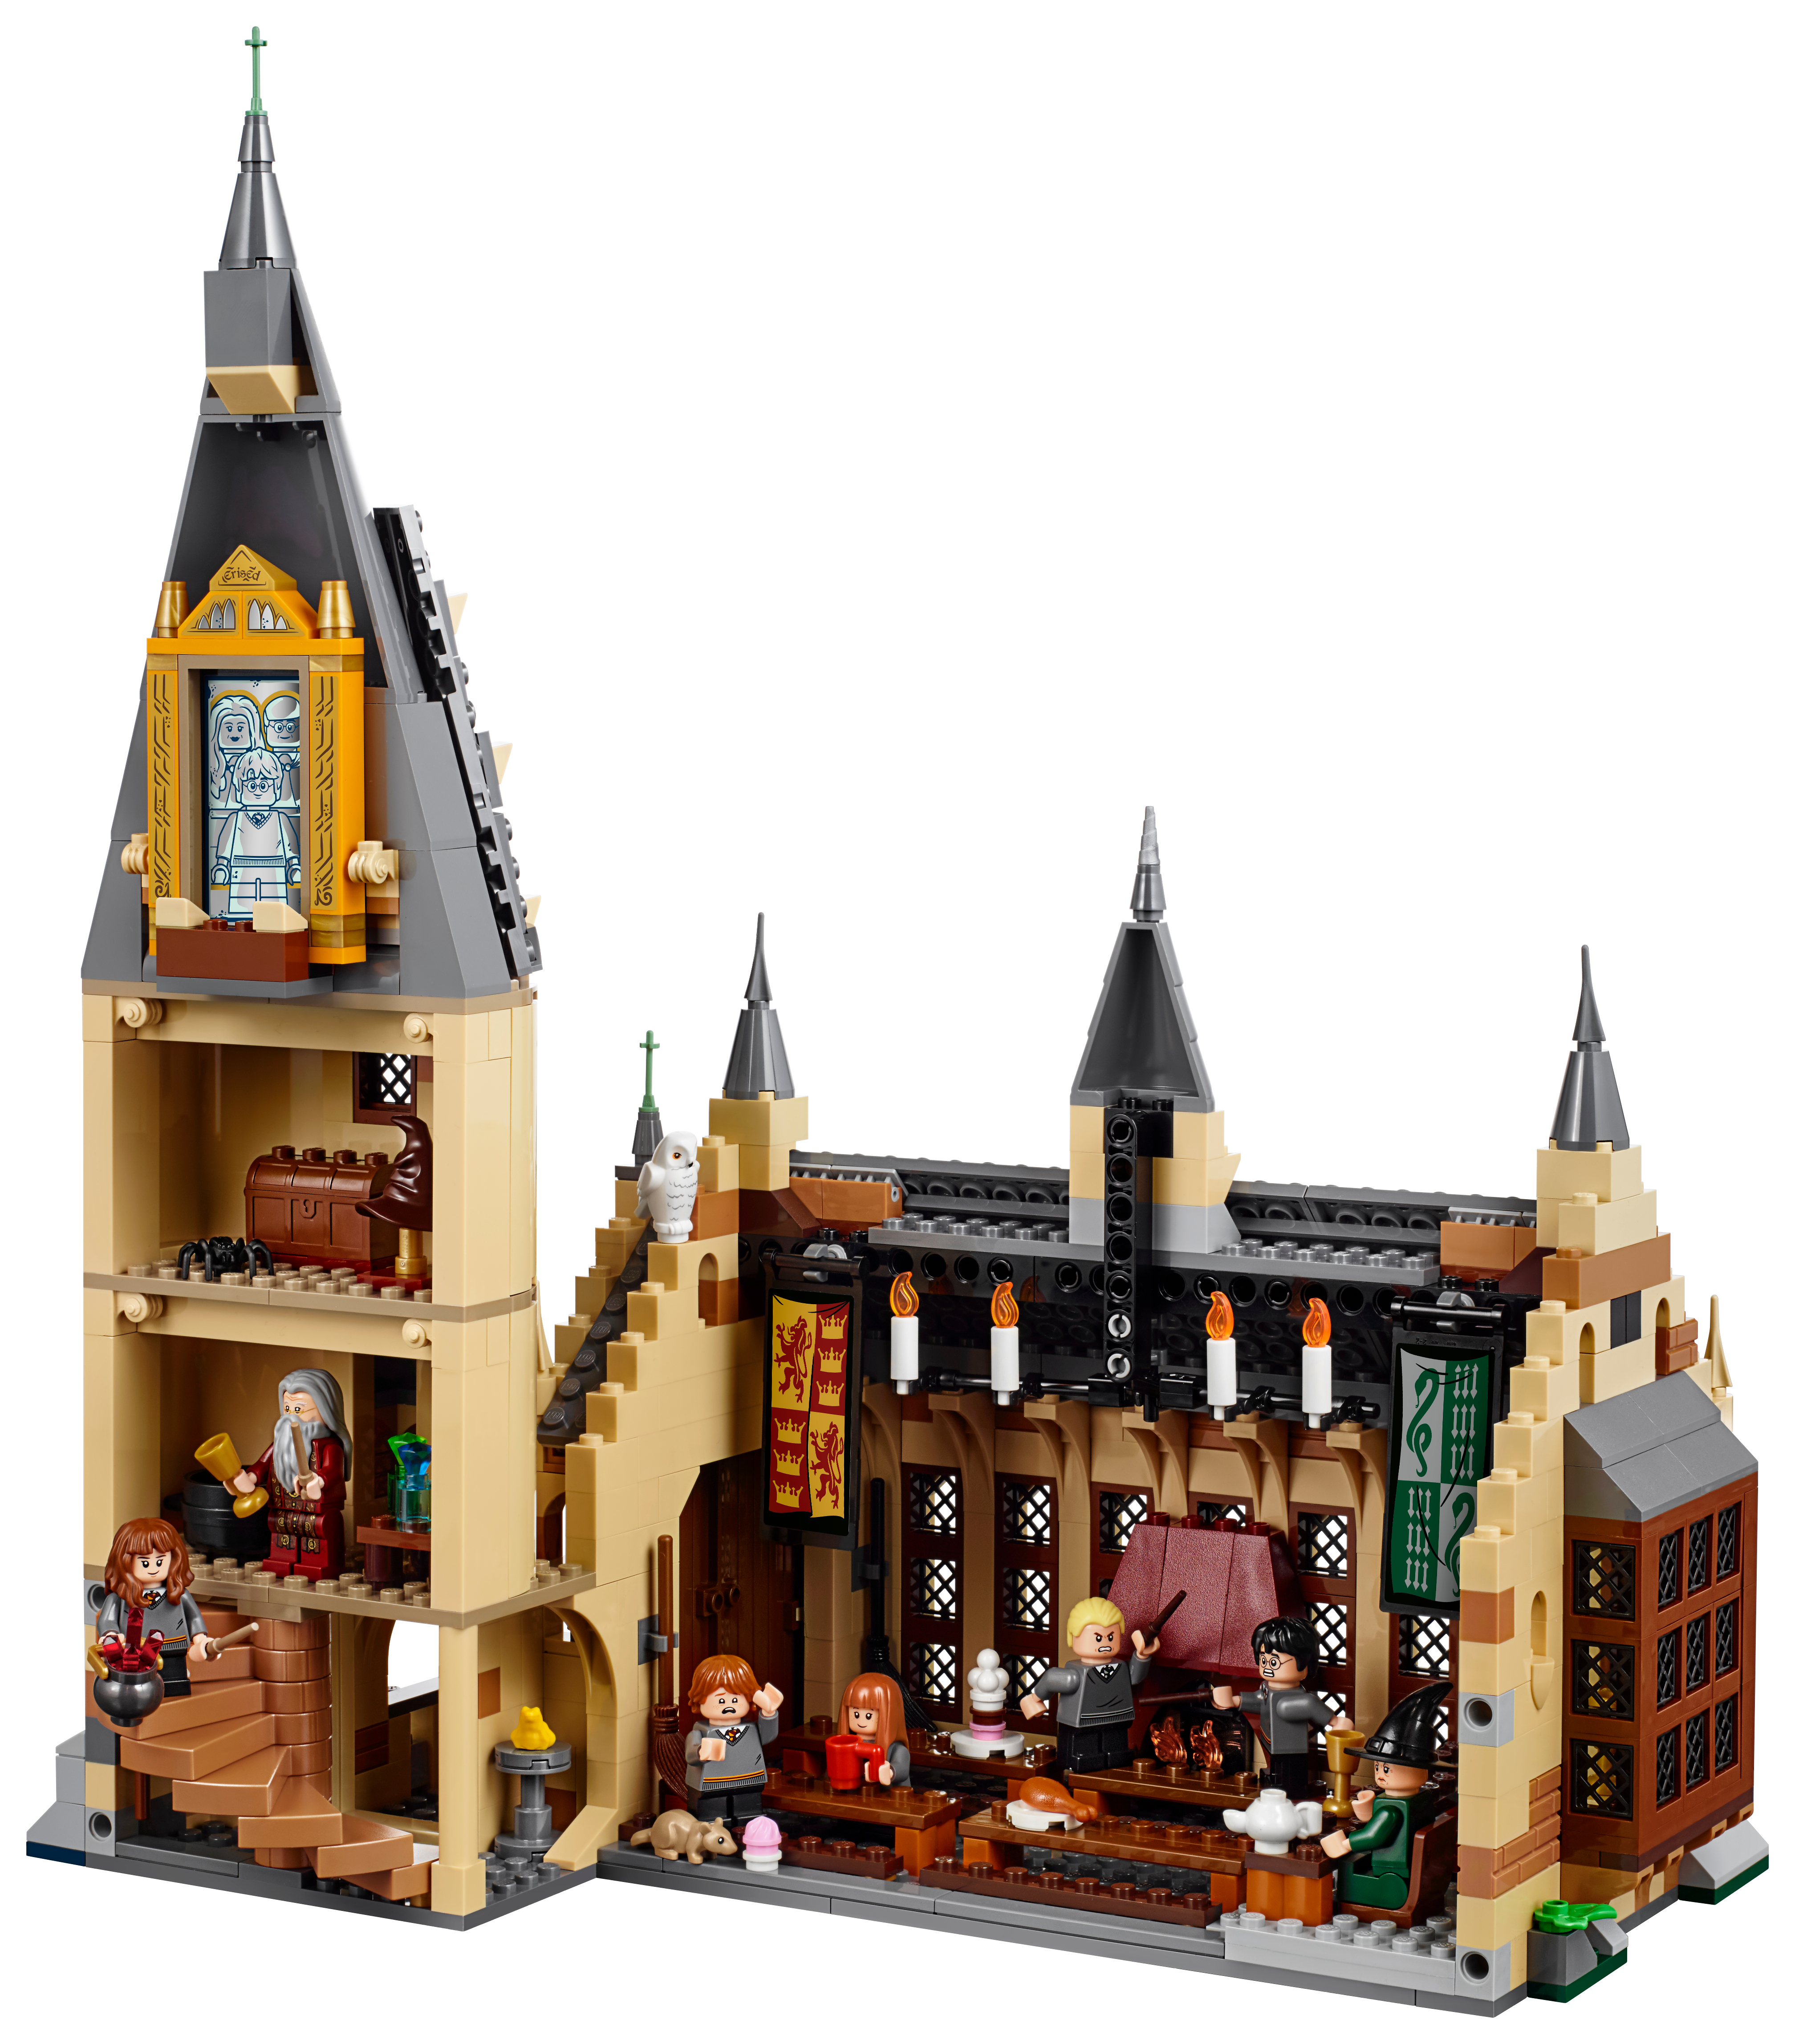 Lego harry potter and the Fantastic Beasts 75954 Fawkes minifigure